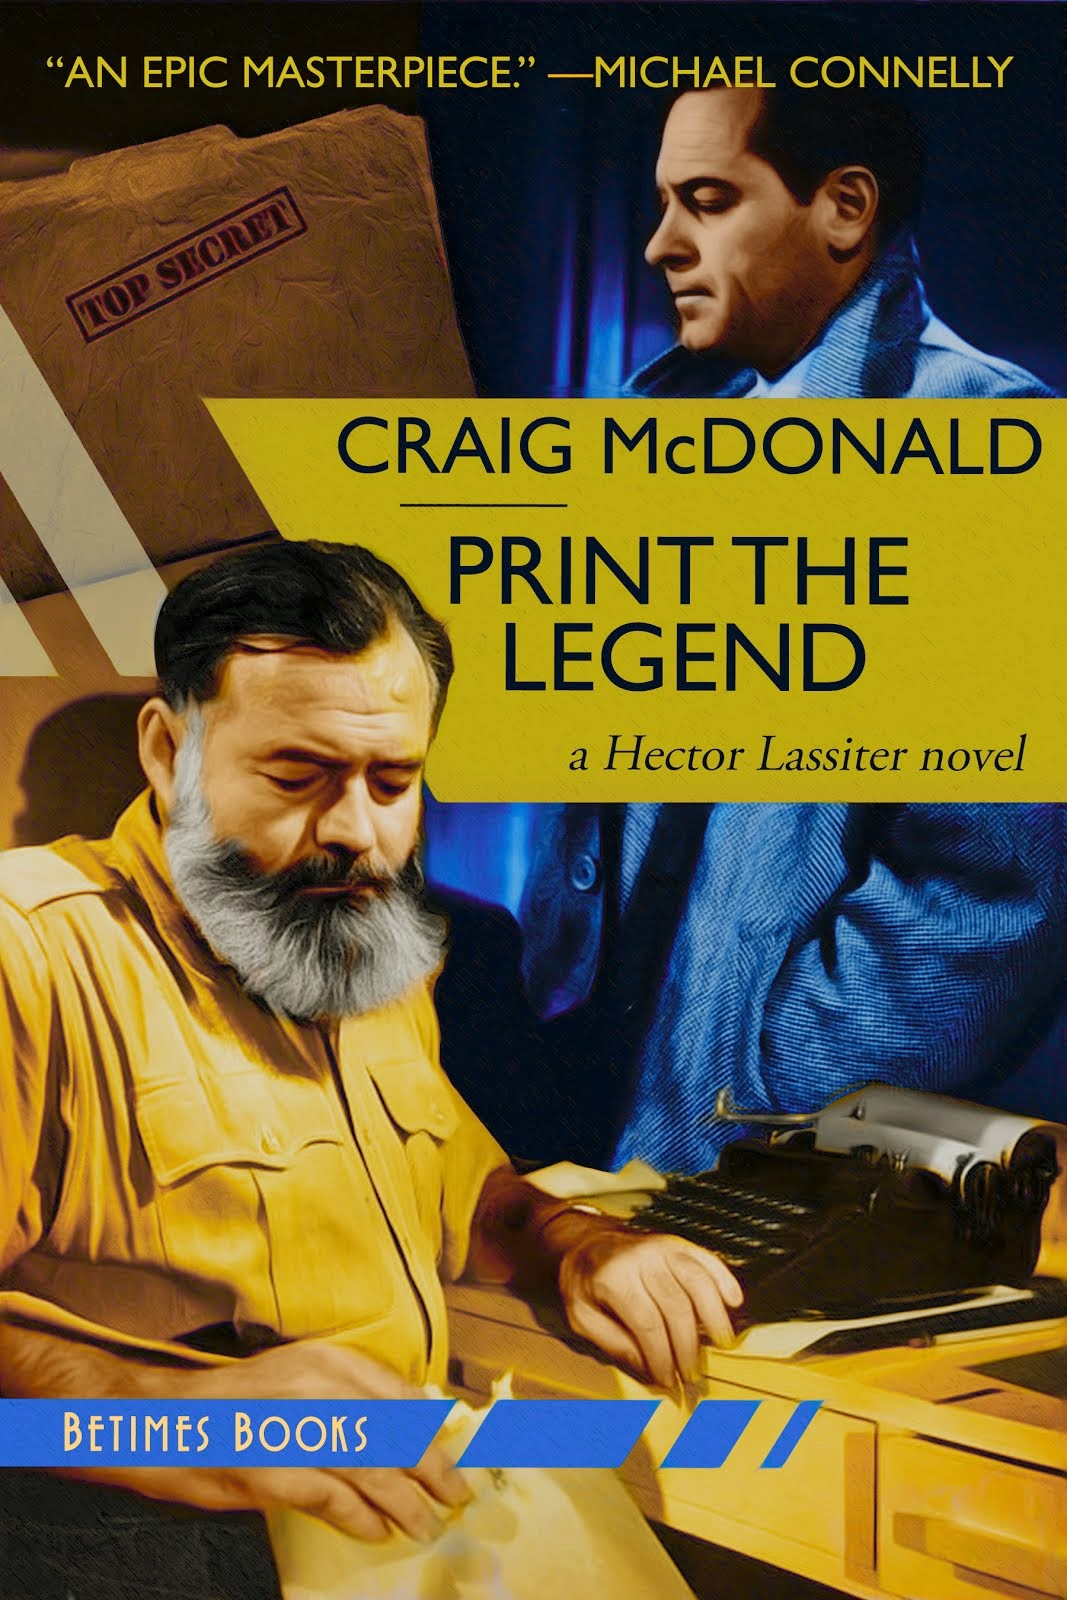 PRINT THE LEGEND (HECTOR LASSITER SERIES #8)